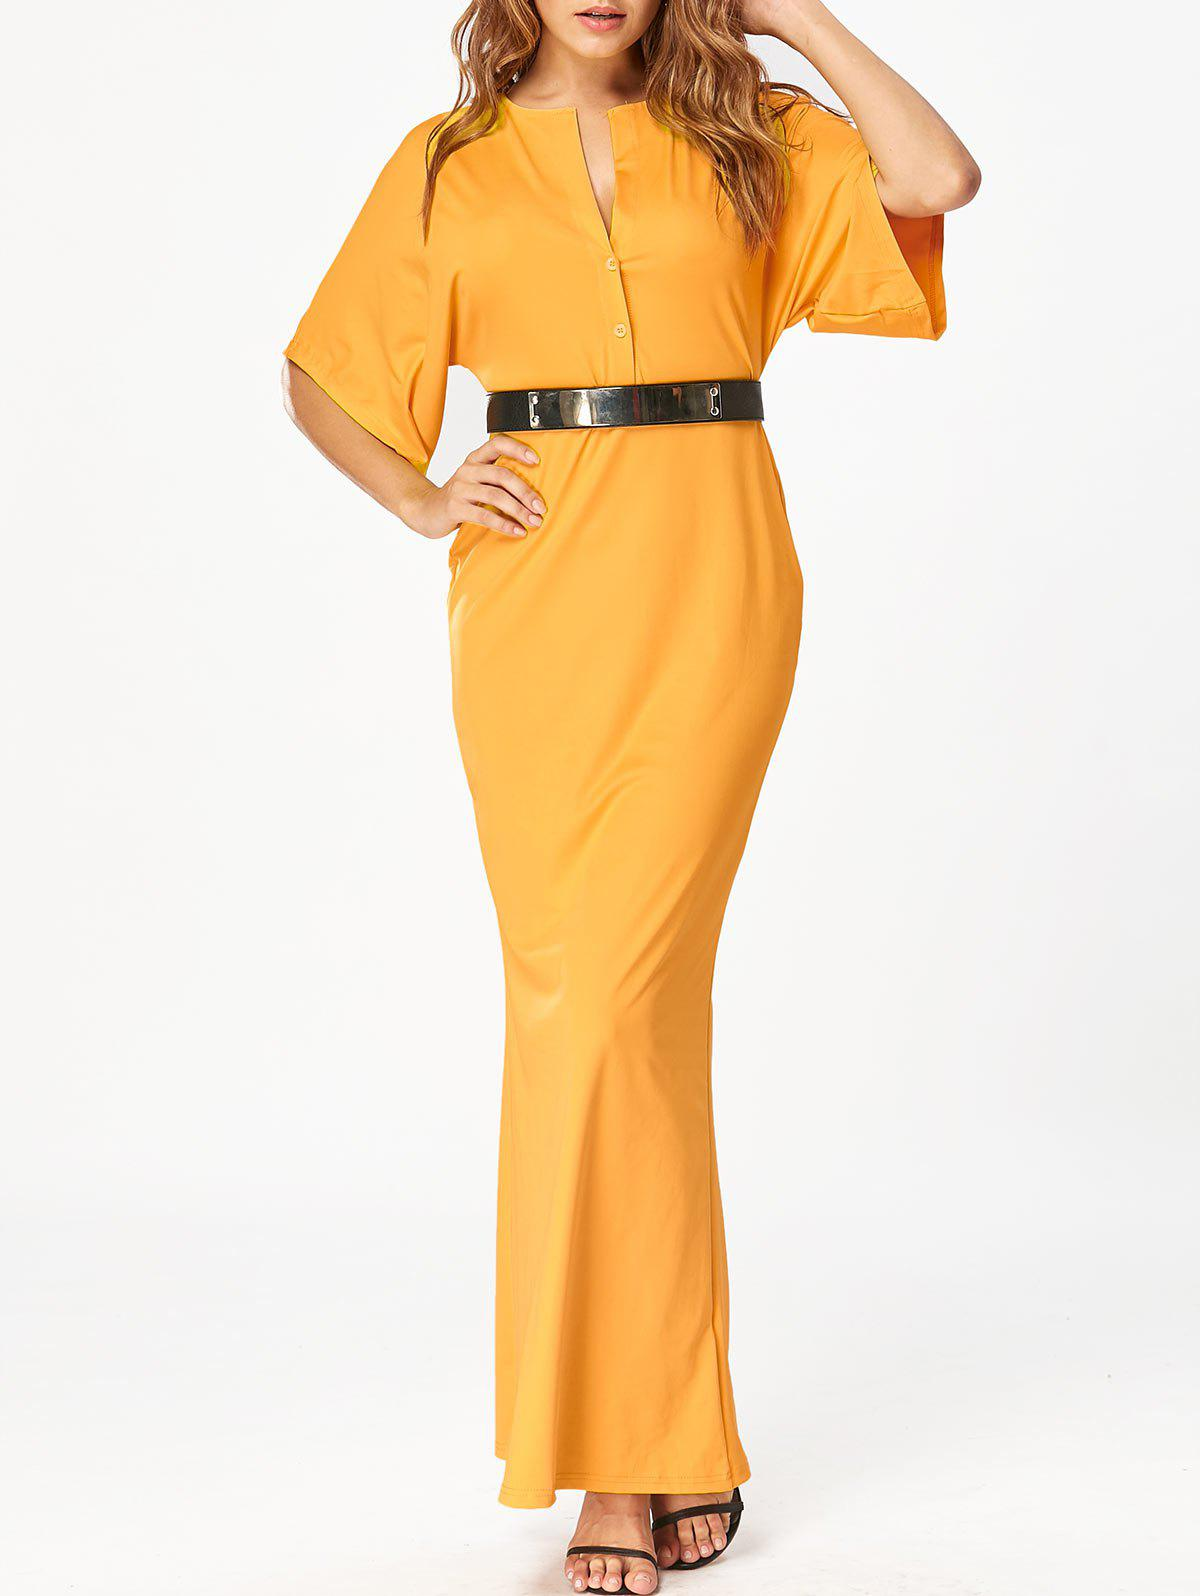 Raglan Sleeve V Neck Bodycon Maxi Dress - Jaune M